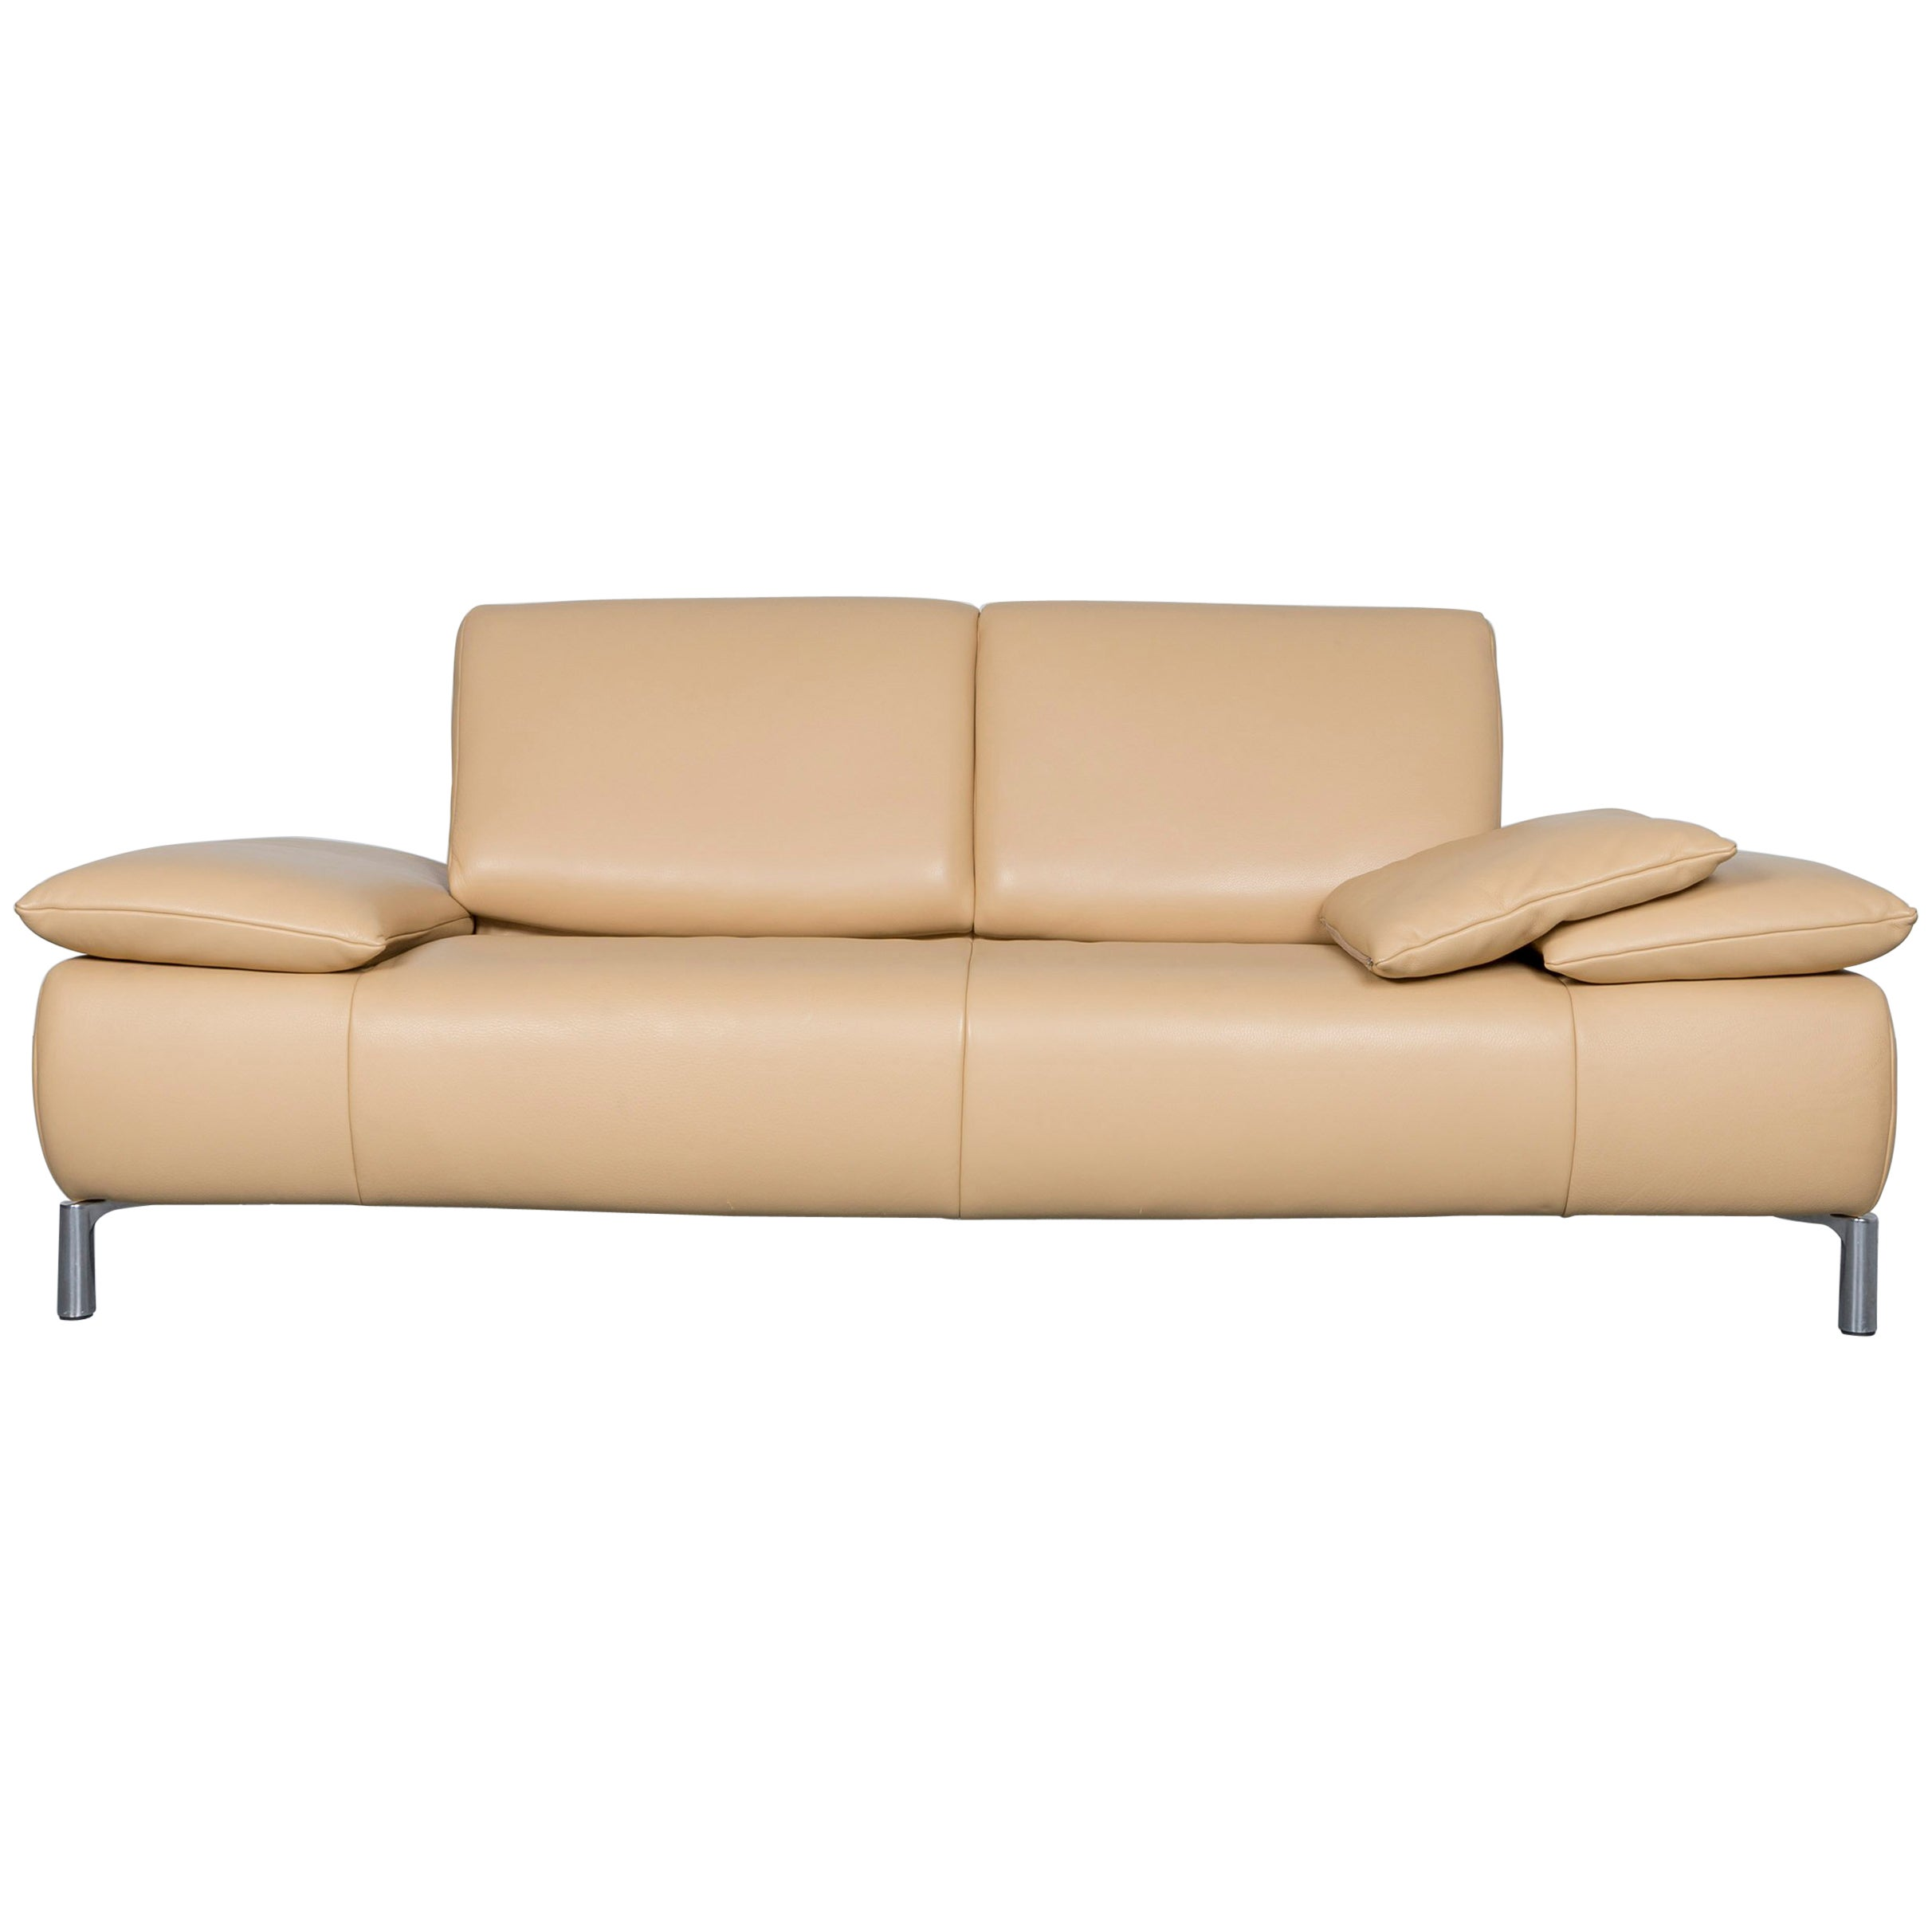 Koinor Goya Designer Leather Sofa Creme Beige Three Seat Couch For Sale At 1stdibs